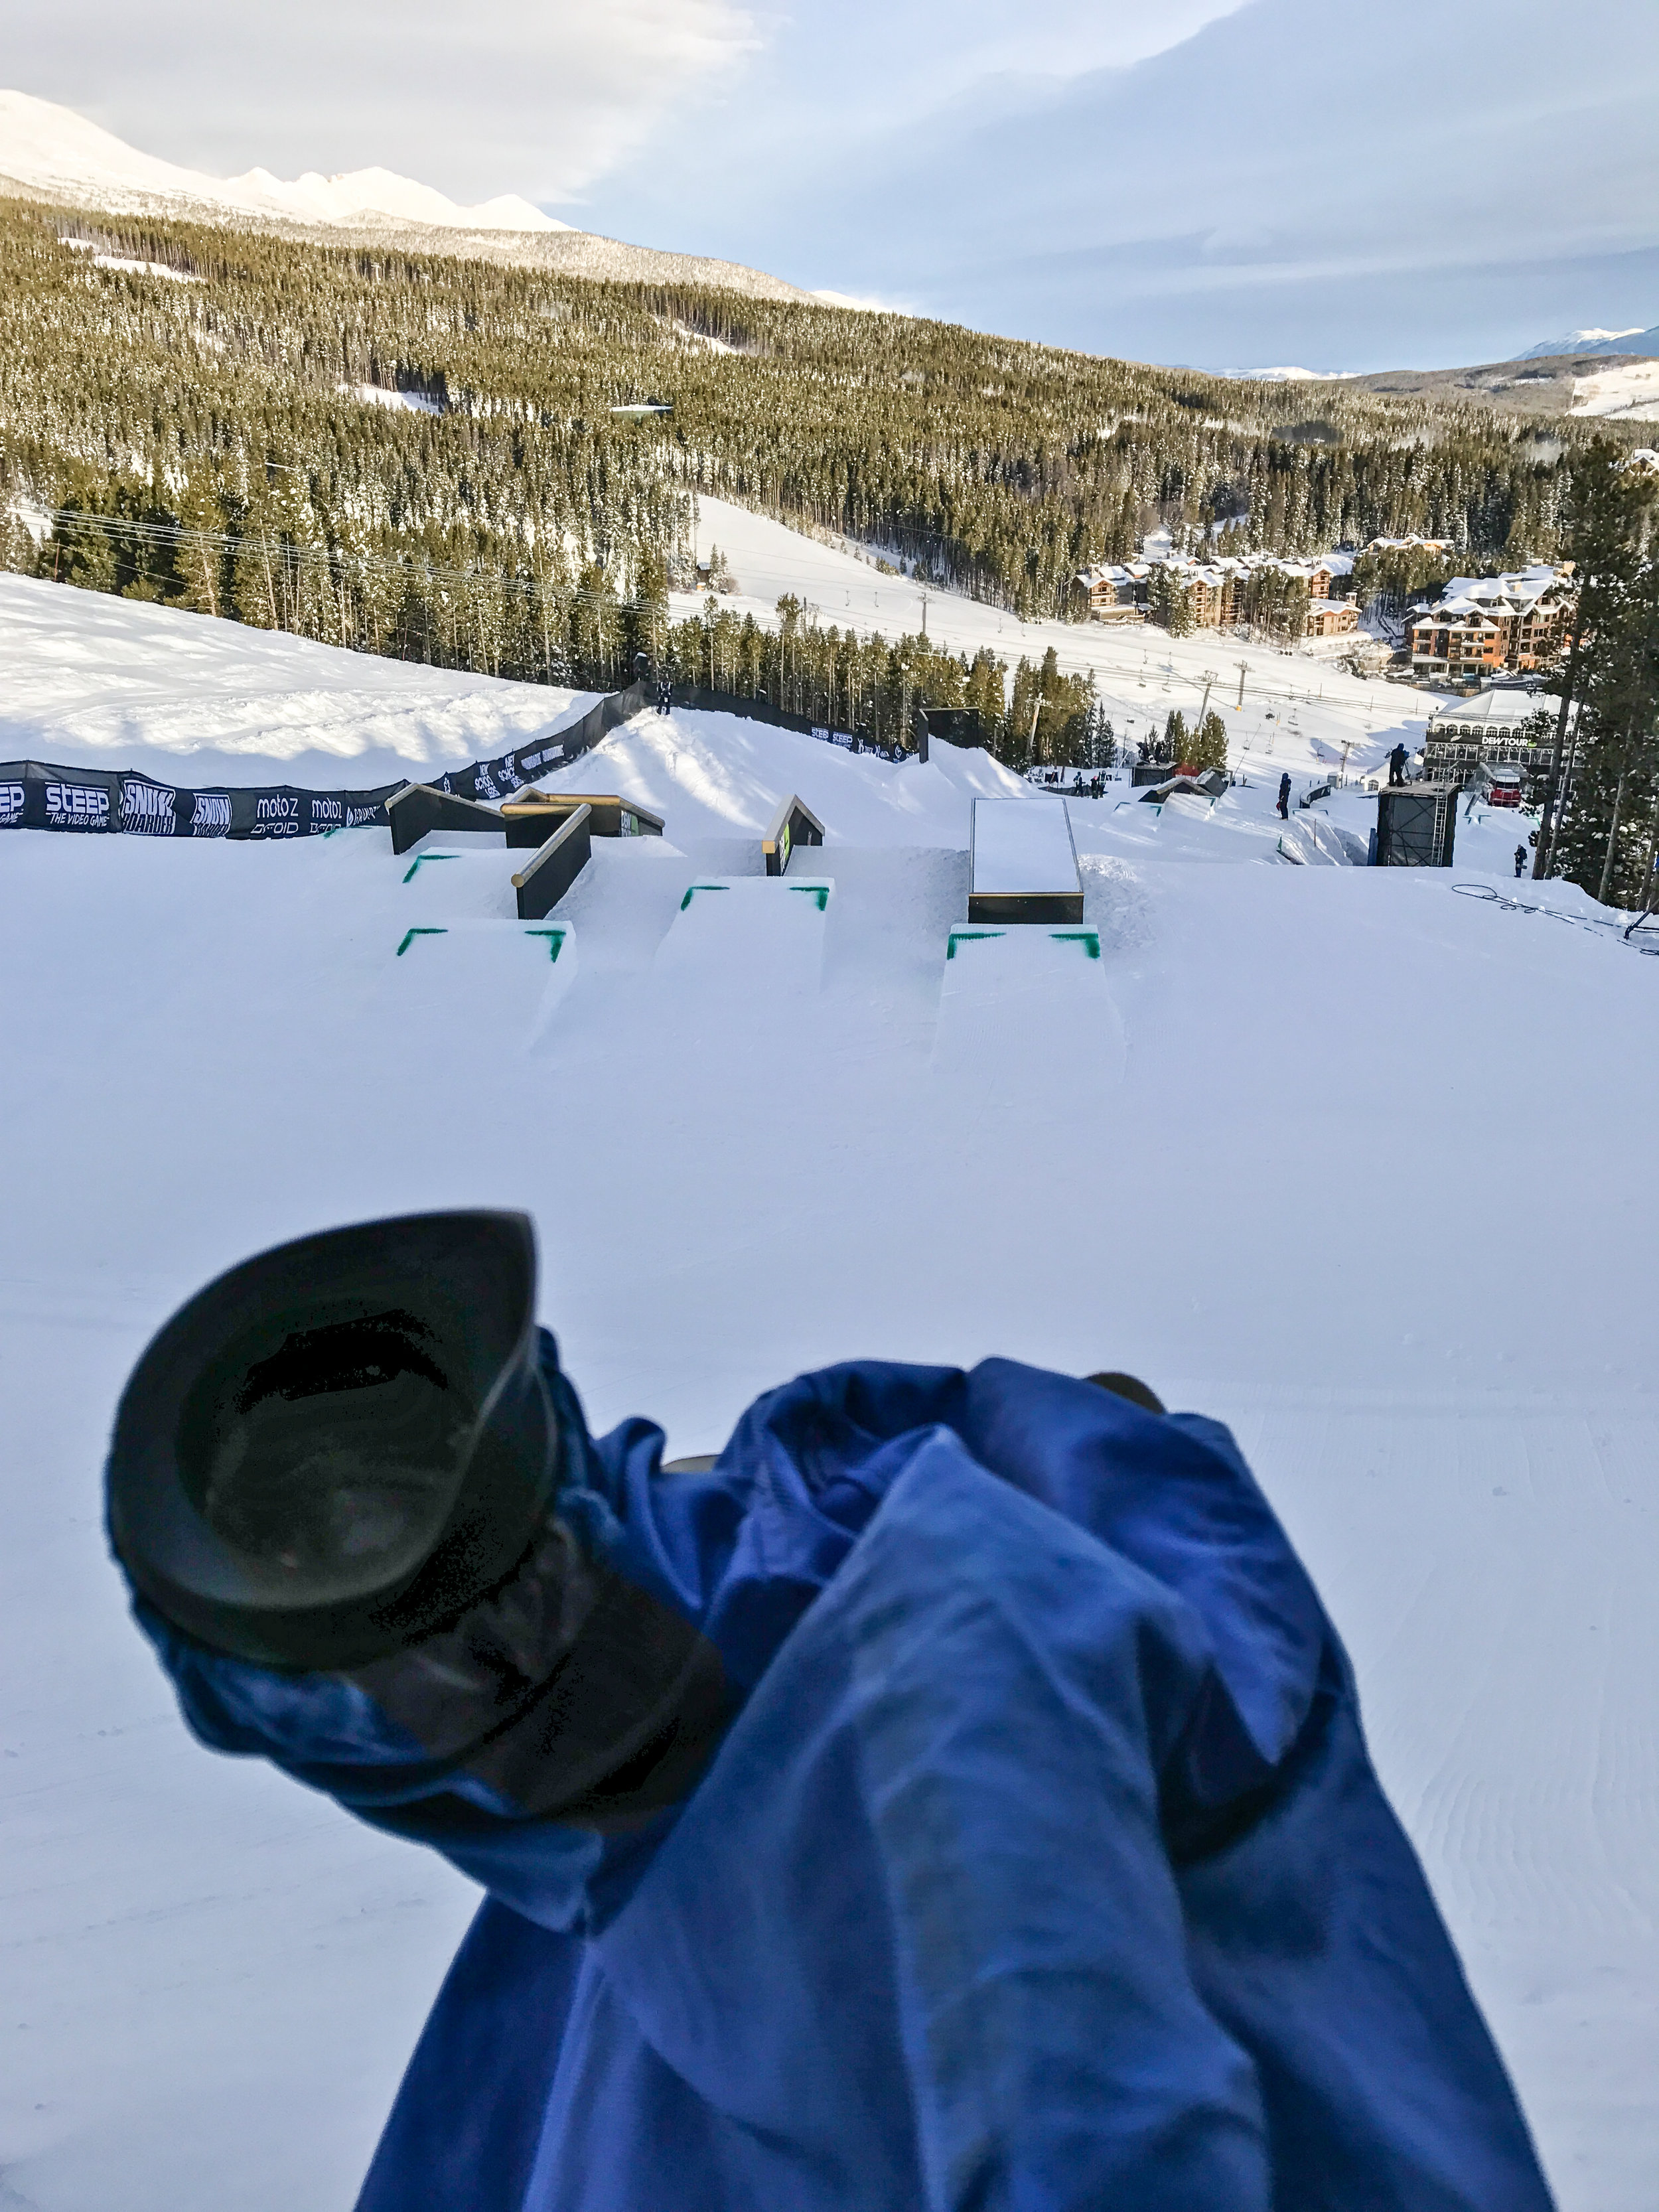 View from the top of the Jibs course. Camera 1. My post for two days.